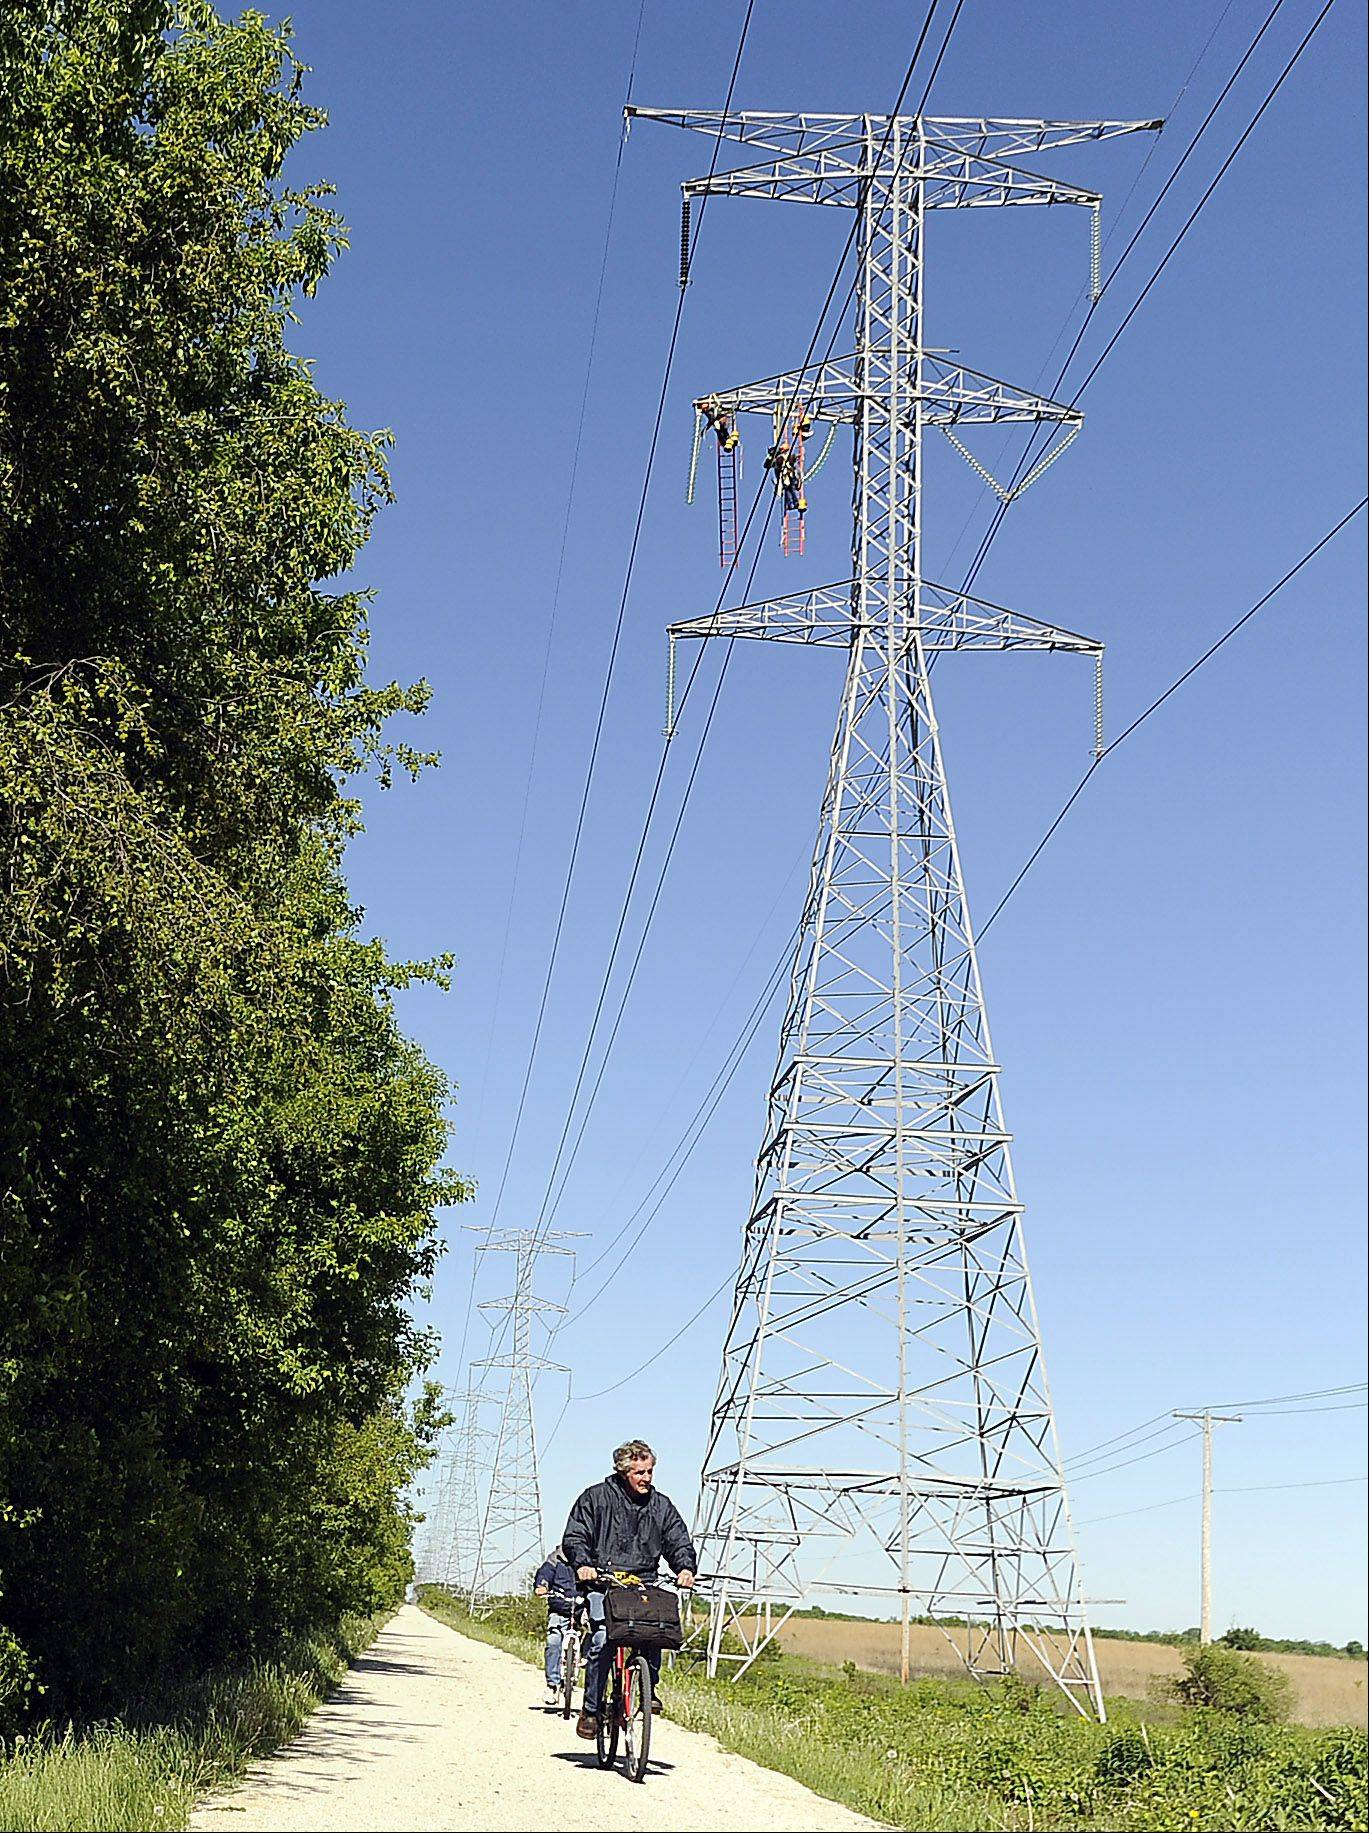 ComEd overhead electricians work on a 130 foot electrical tower above a bike path in Wayne.